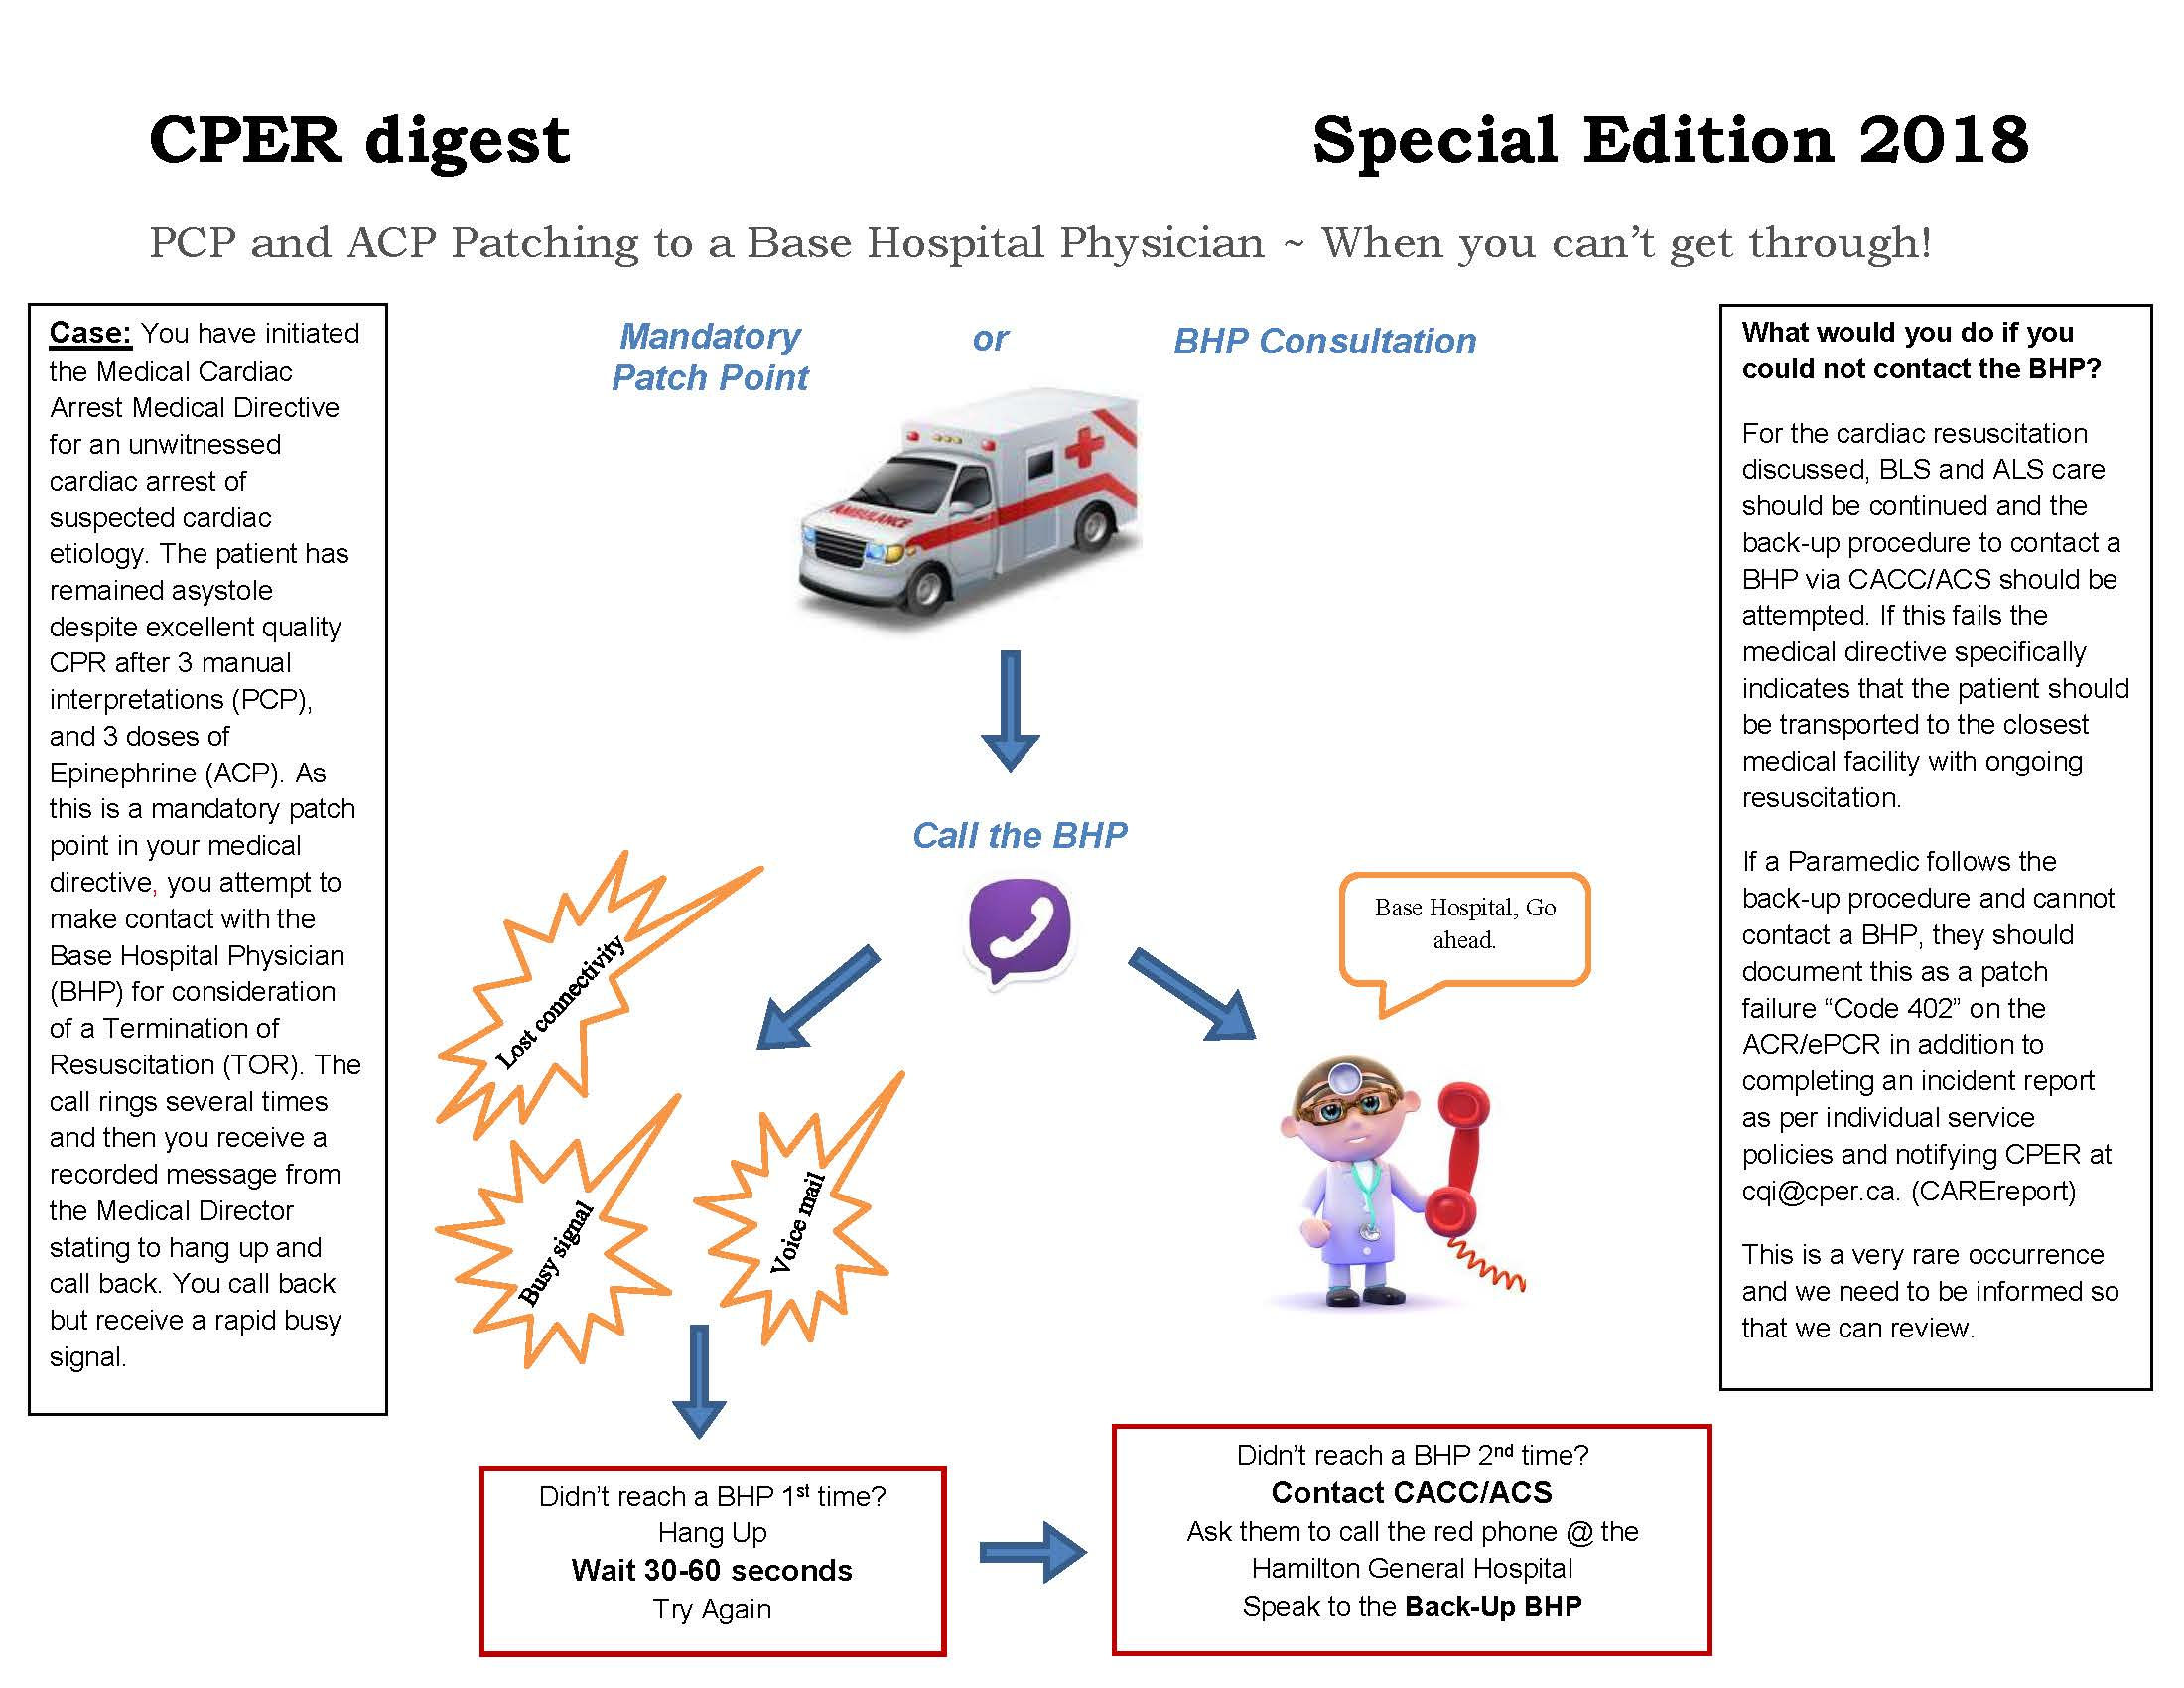 CPER digest Special Edition 2018 Final Page 2